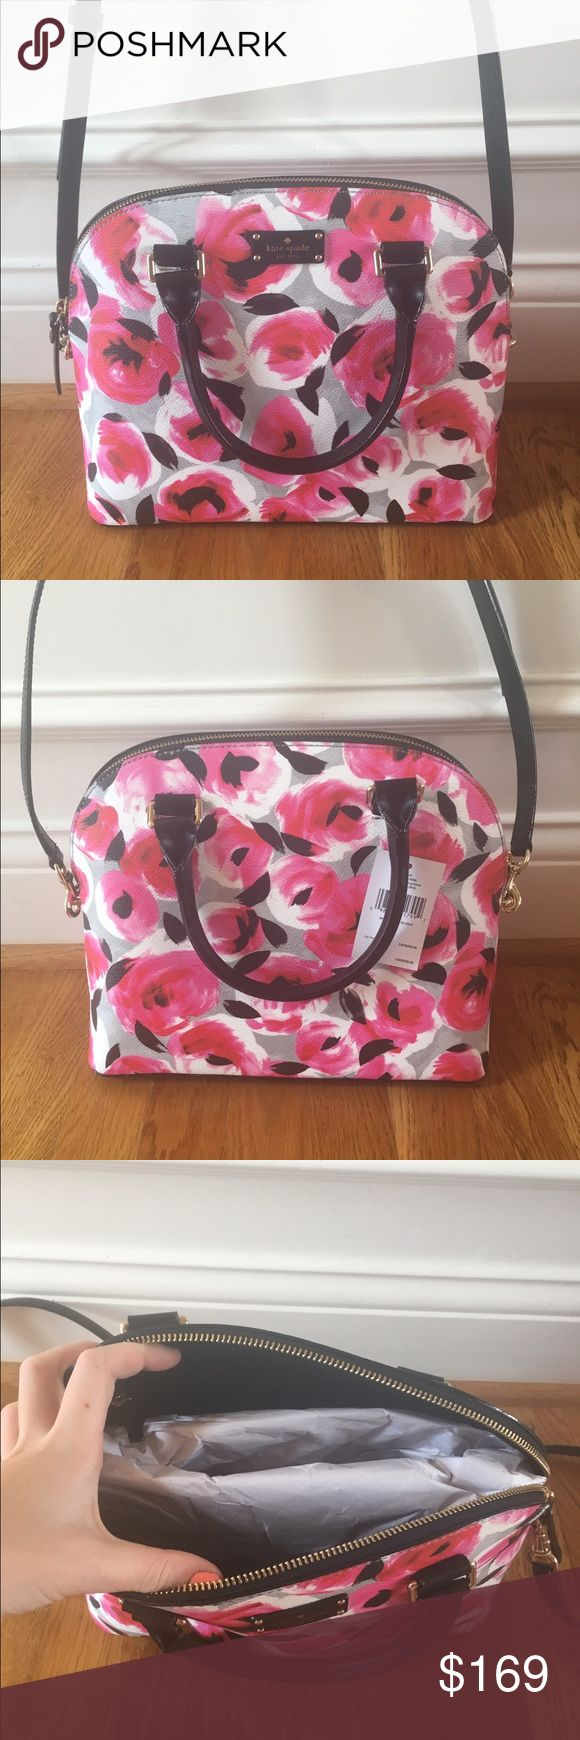 ❗️SALE❗️$359 Kate Spade Crossbody ❗️SALE❗️$359 Kate Spade Crossbody in carli grove street printed rose bed// brand new, perfect condition, never worn before kate spade Bags Crossbody Bags